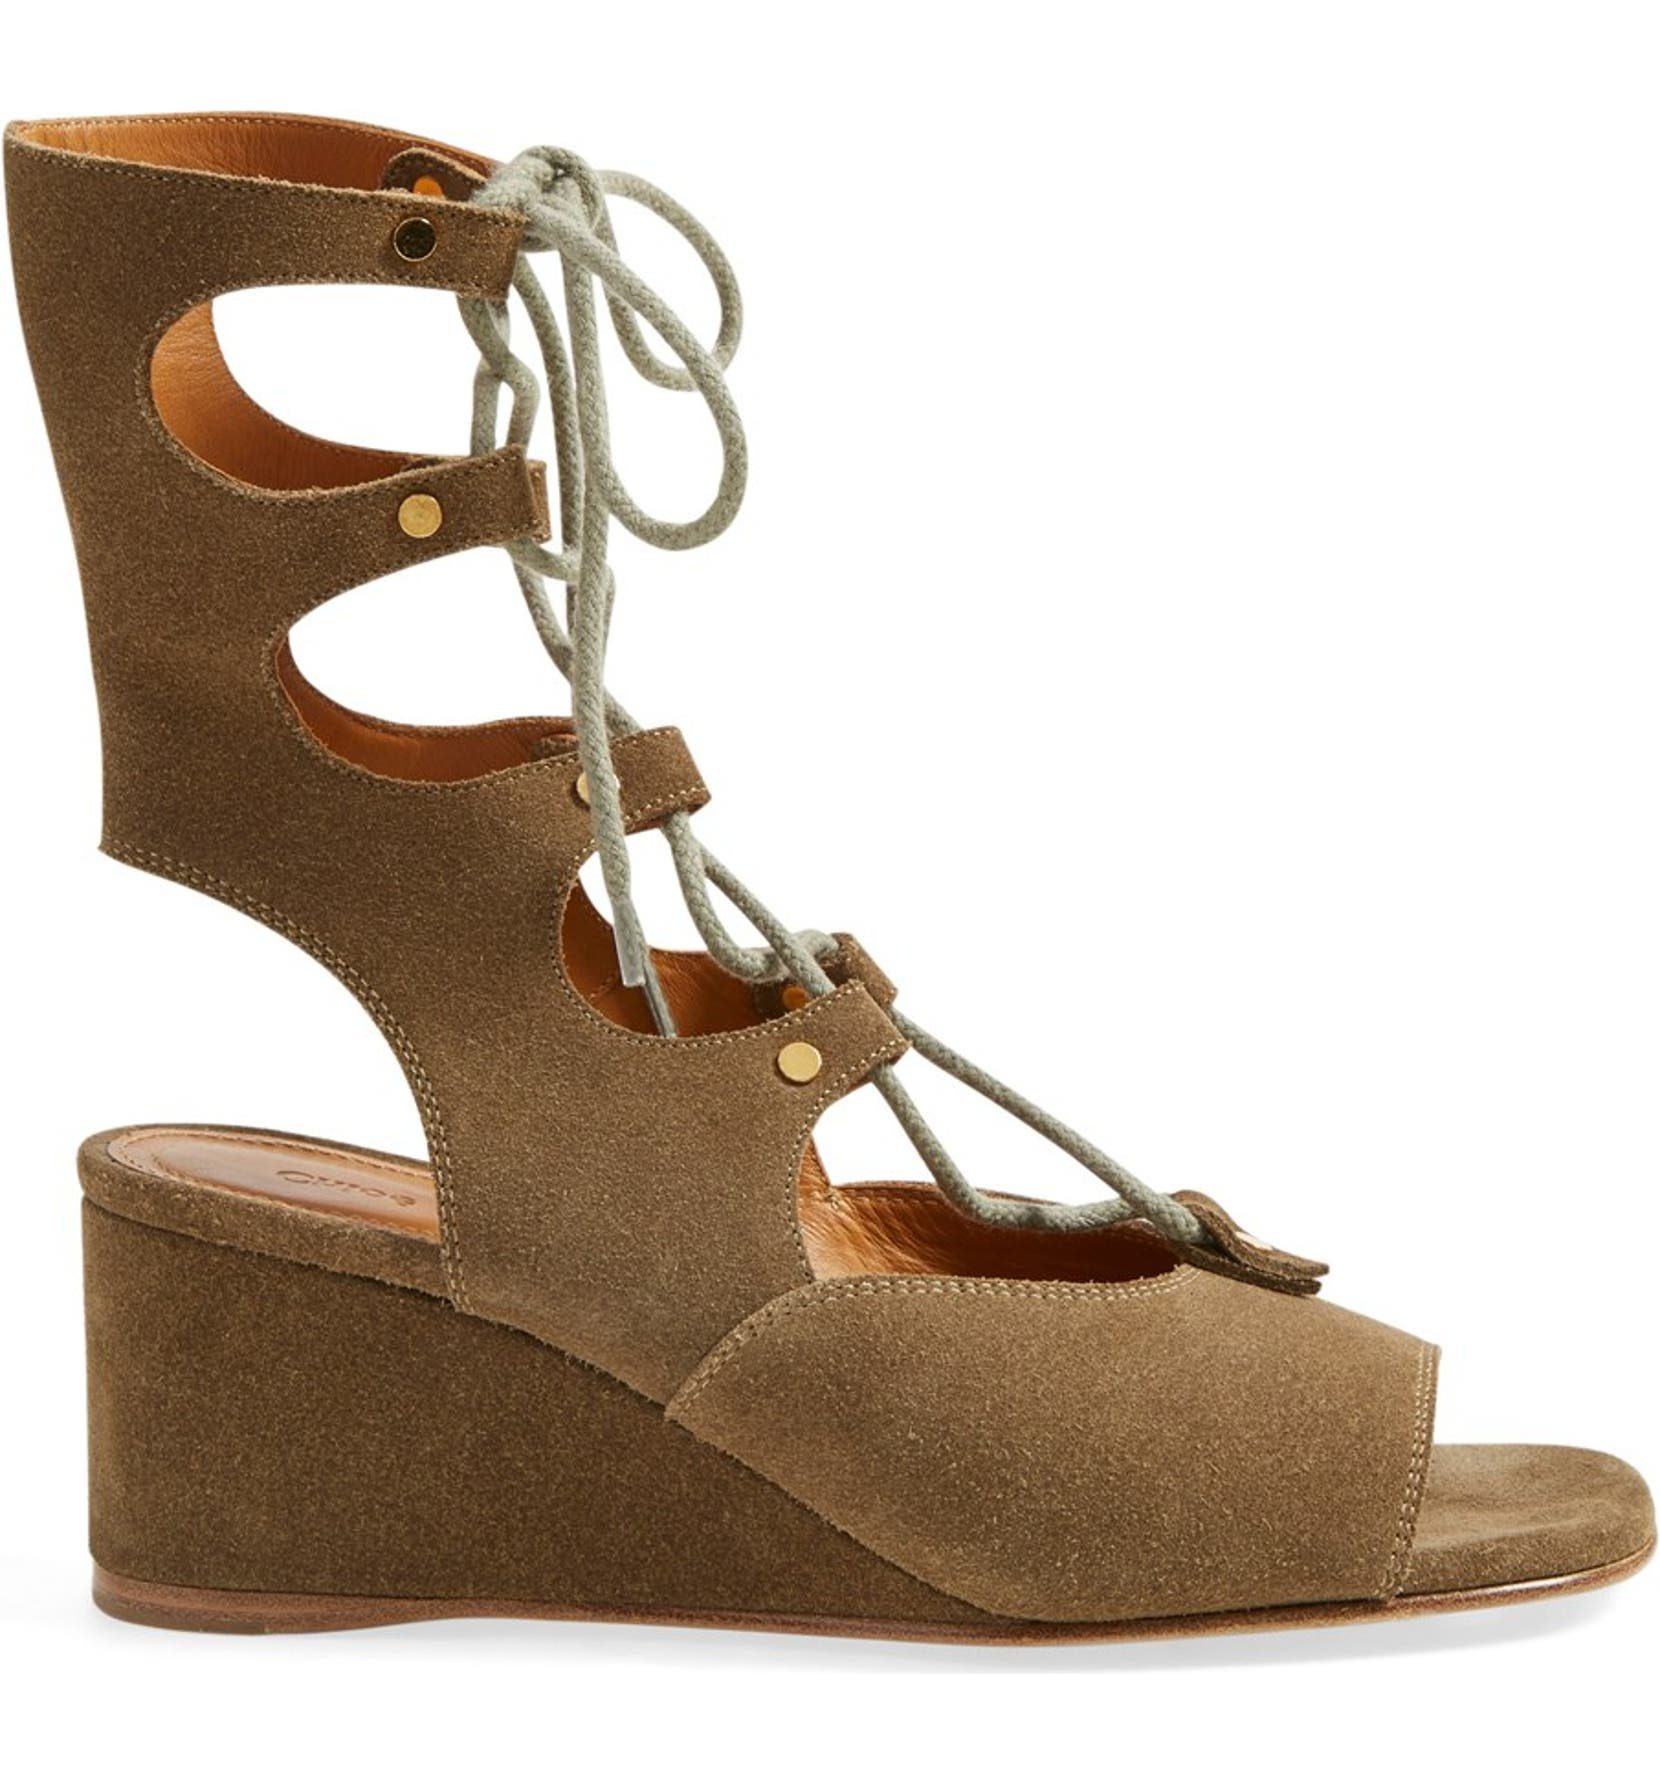 59f1dc89d06 Chloé  Foster  Suede Wedge Gladiator Sandal (Women)